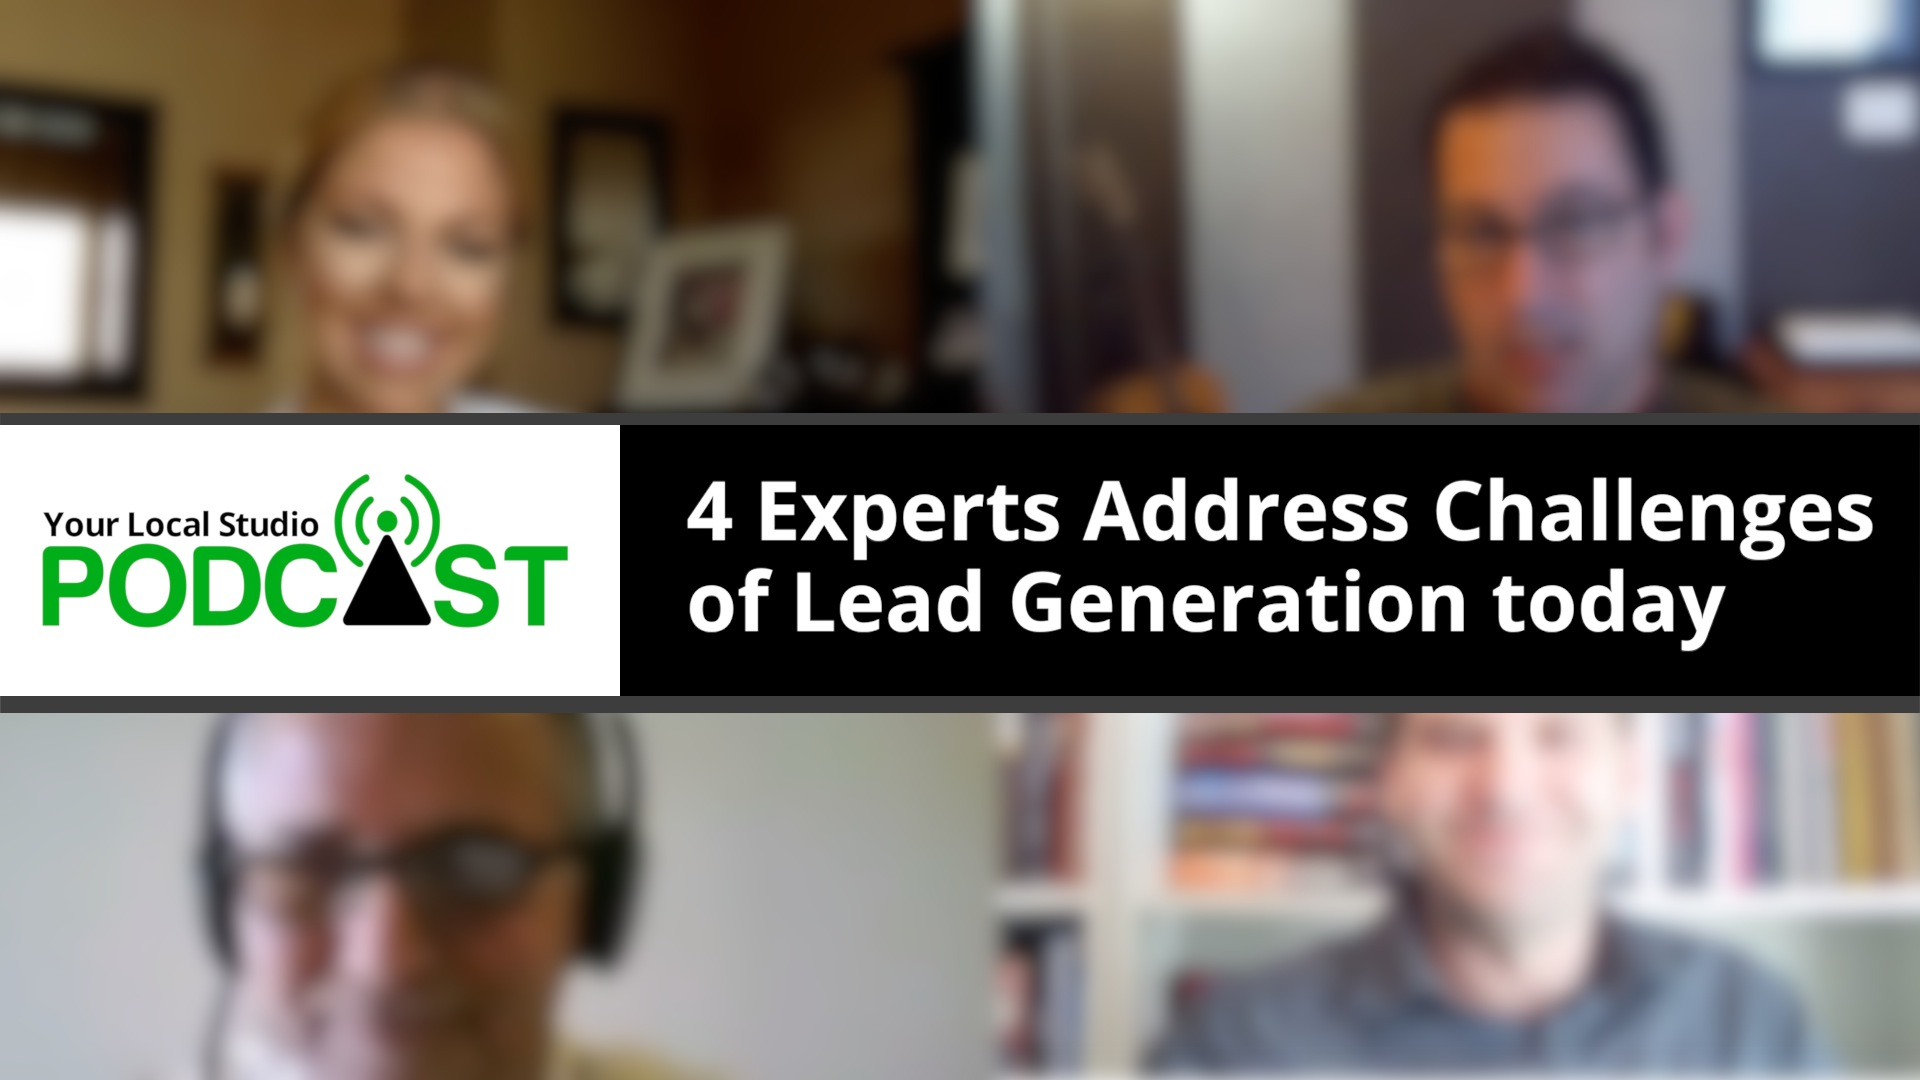 4 Experts Address Challenges of Lead Generation Today